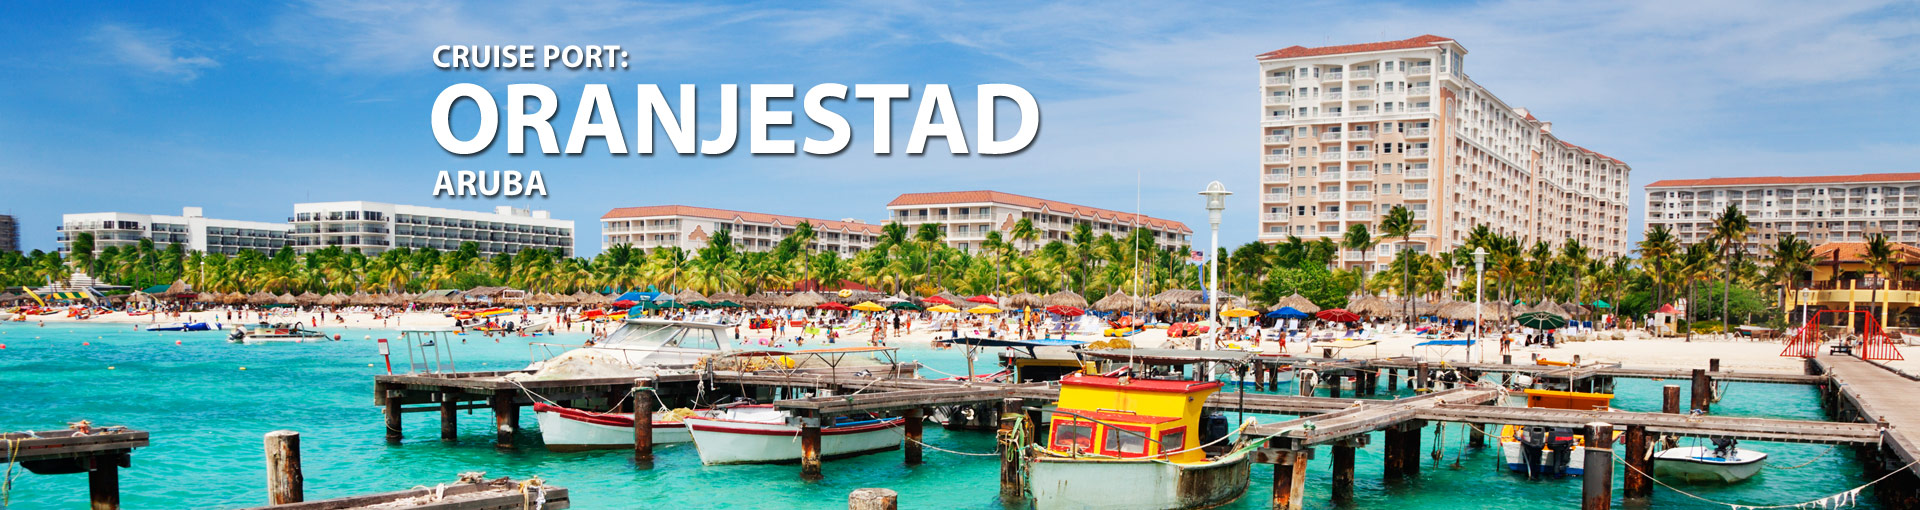 Cruises from Oranjestad, Aruba